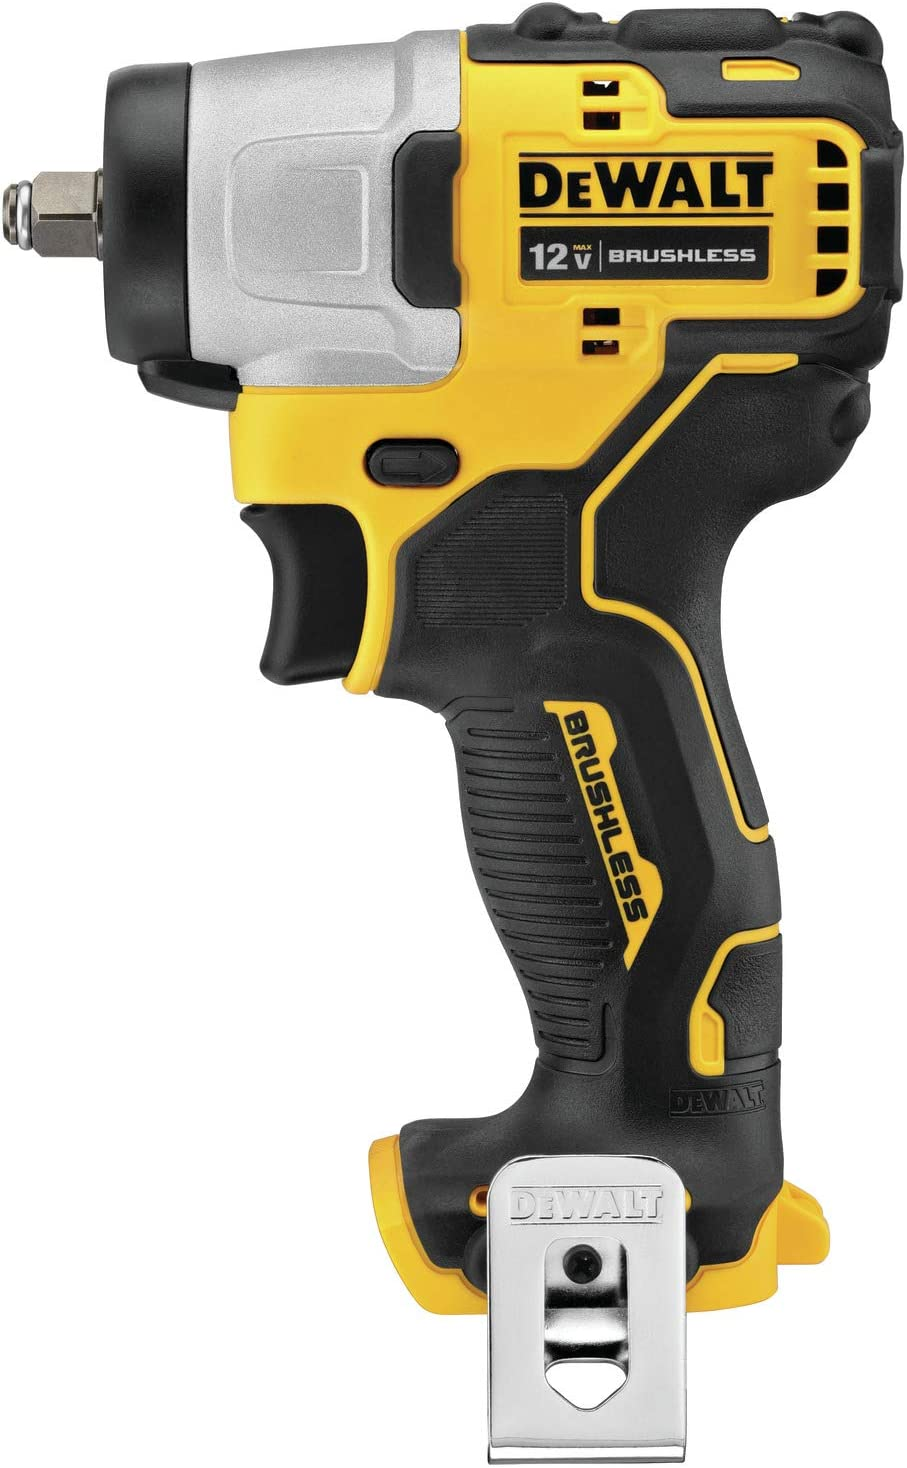 DEWALT DCF902B XTREME 12V MAX Brushless 3/8 in. Cordless Impact Wrench (Tool Only)